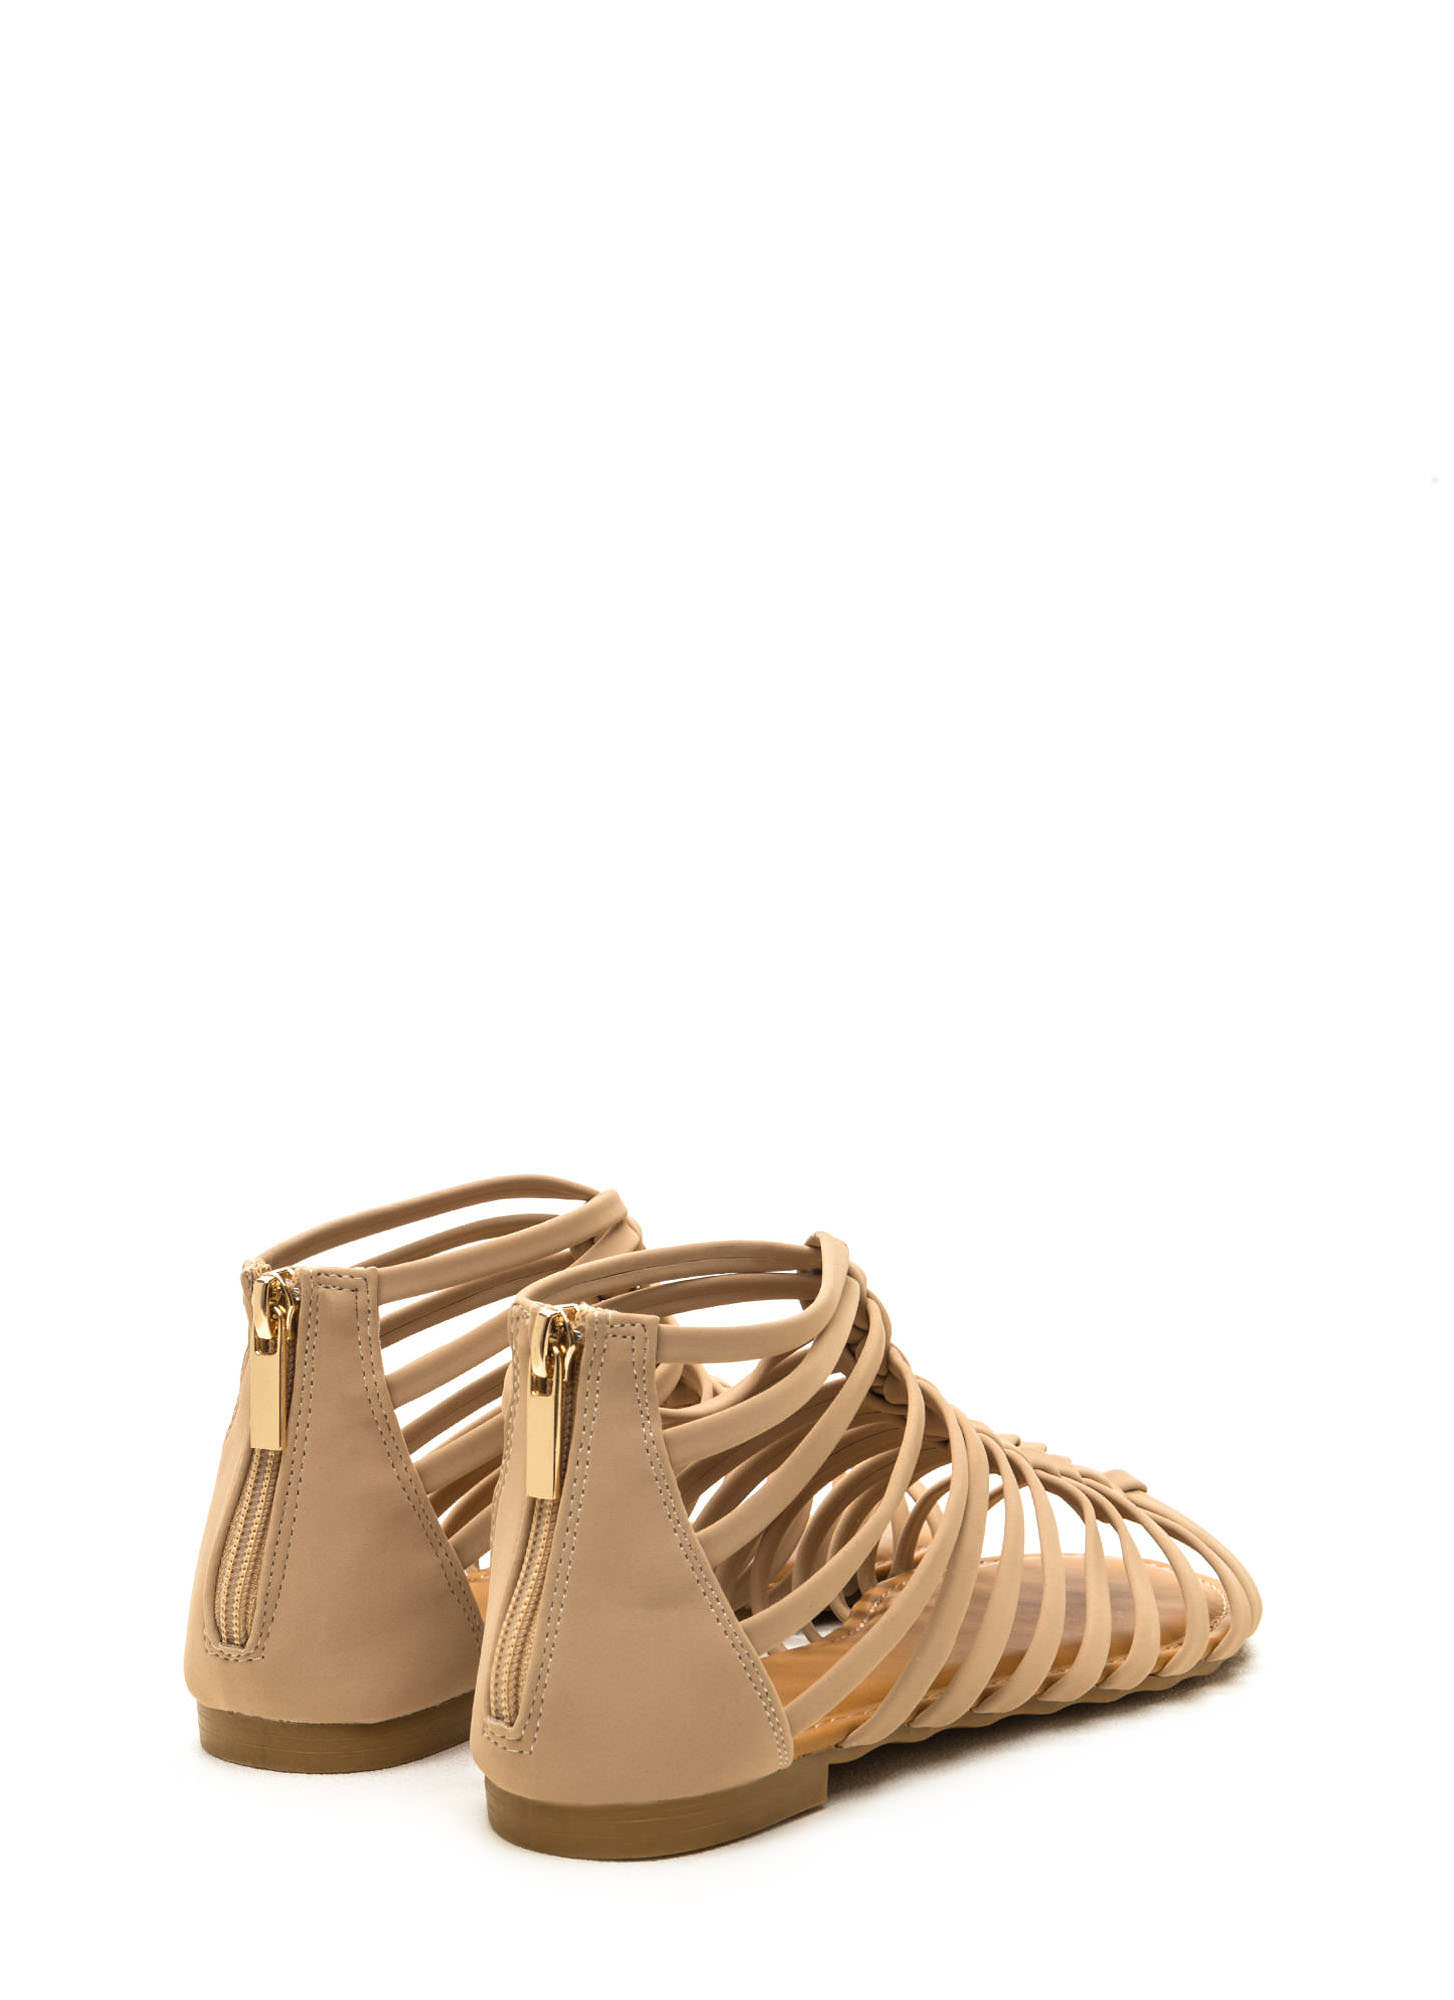 Keep In Line Caged Faux Nubuck Sandals NUDE